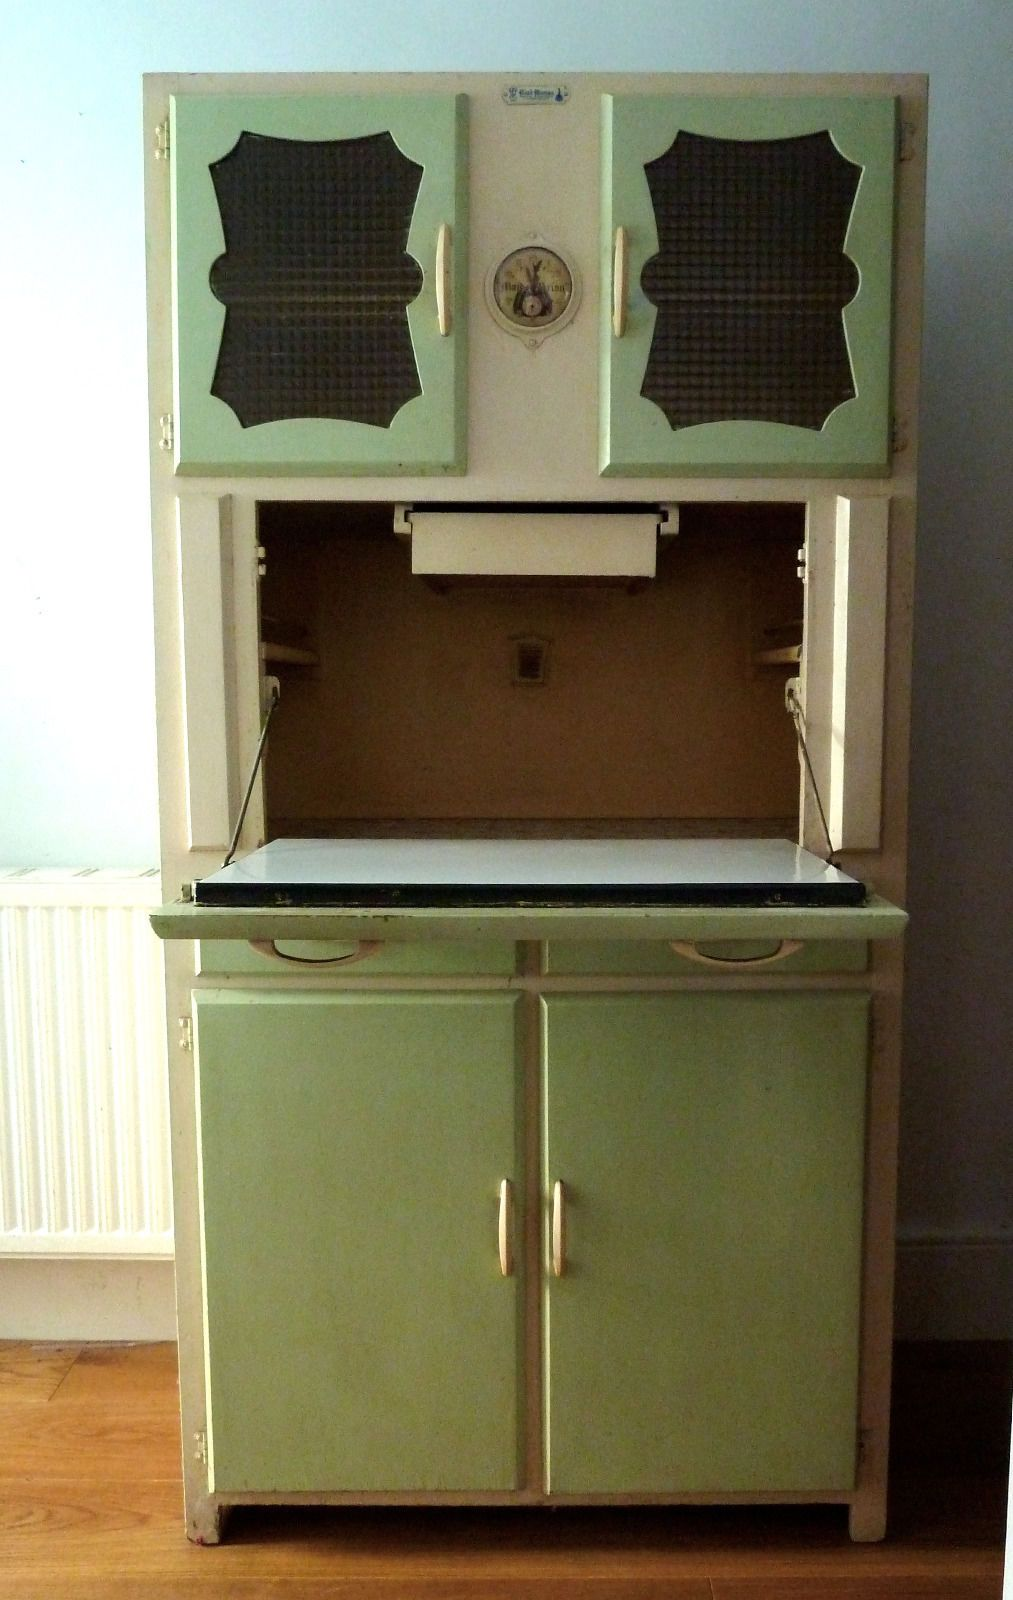 1950s Kitchen Furniture Vintage 1950s Kitchen Dresser Buffet Hutch Retro Kitchen Dresser